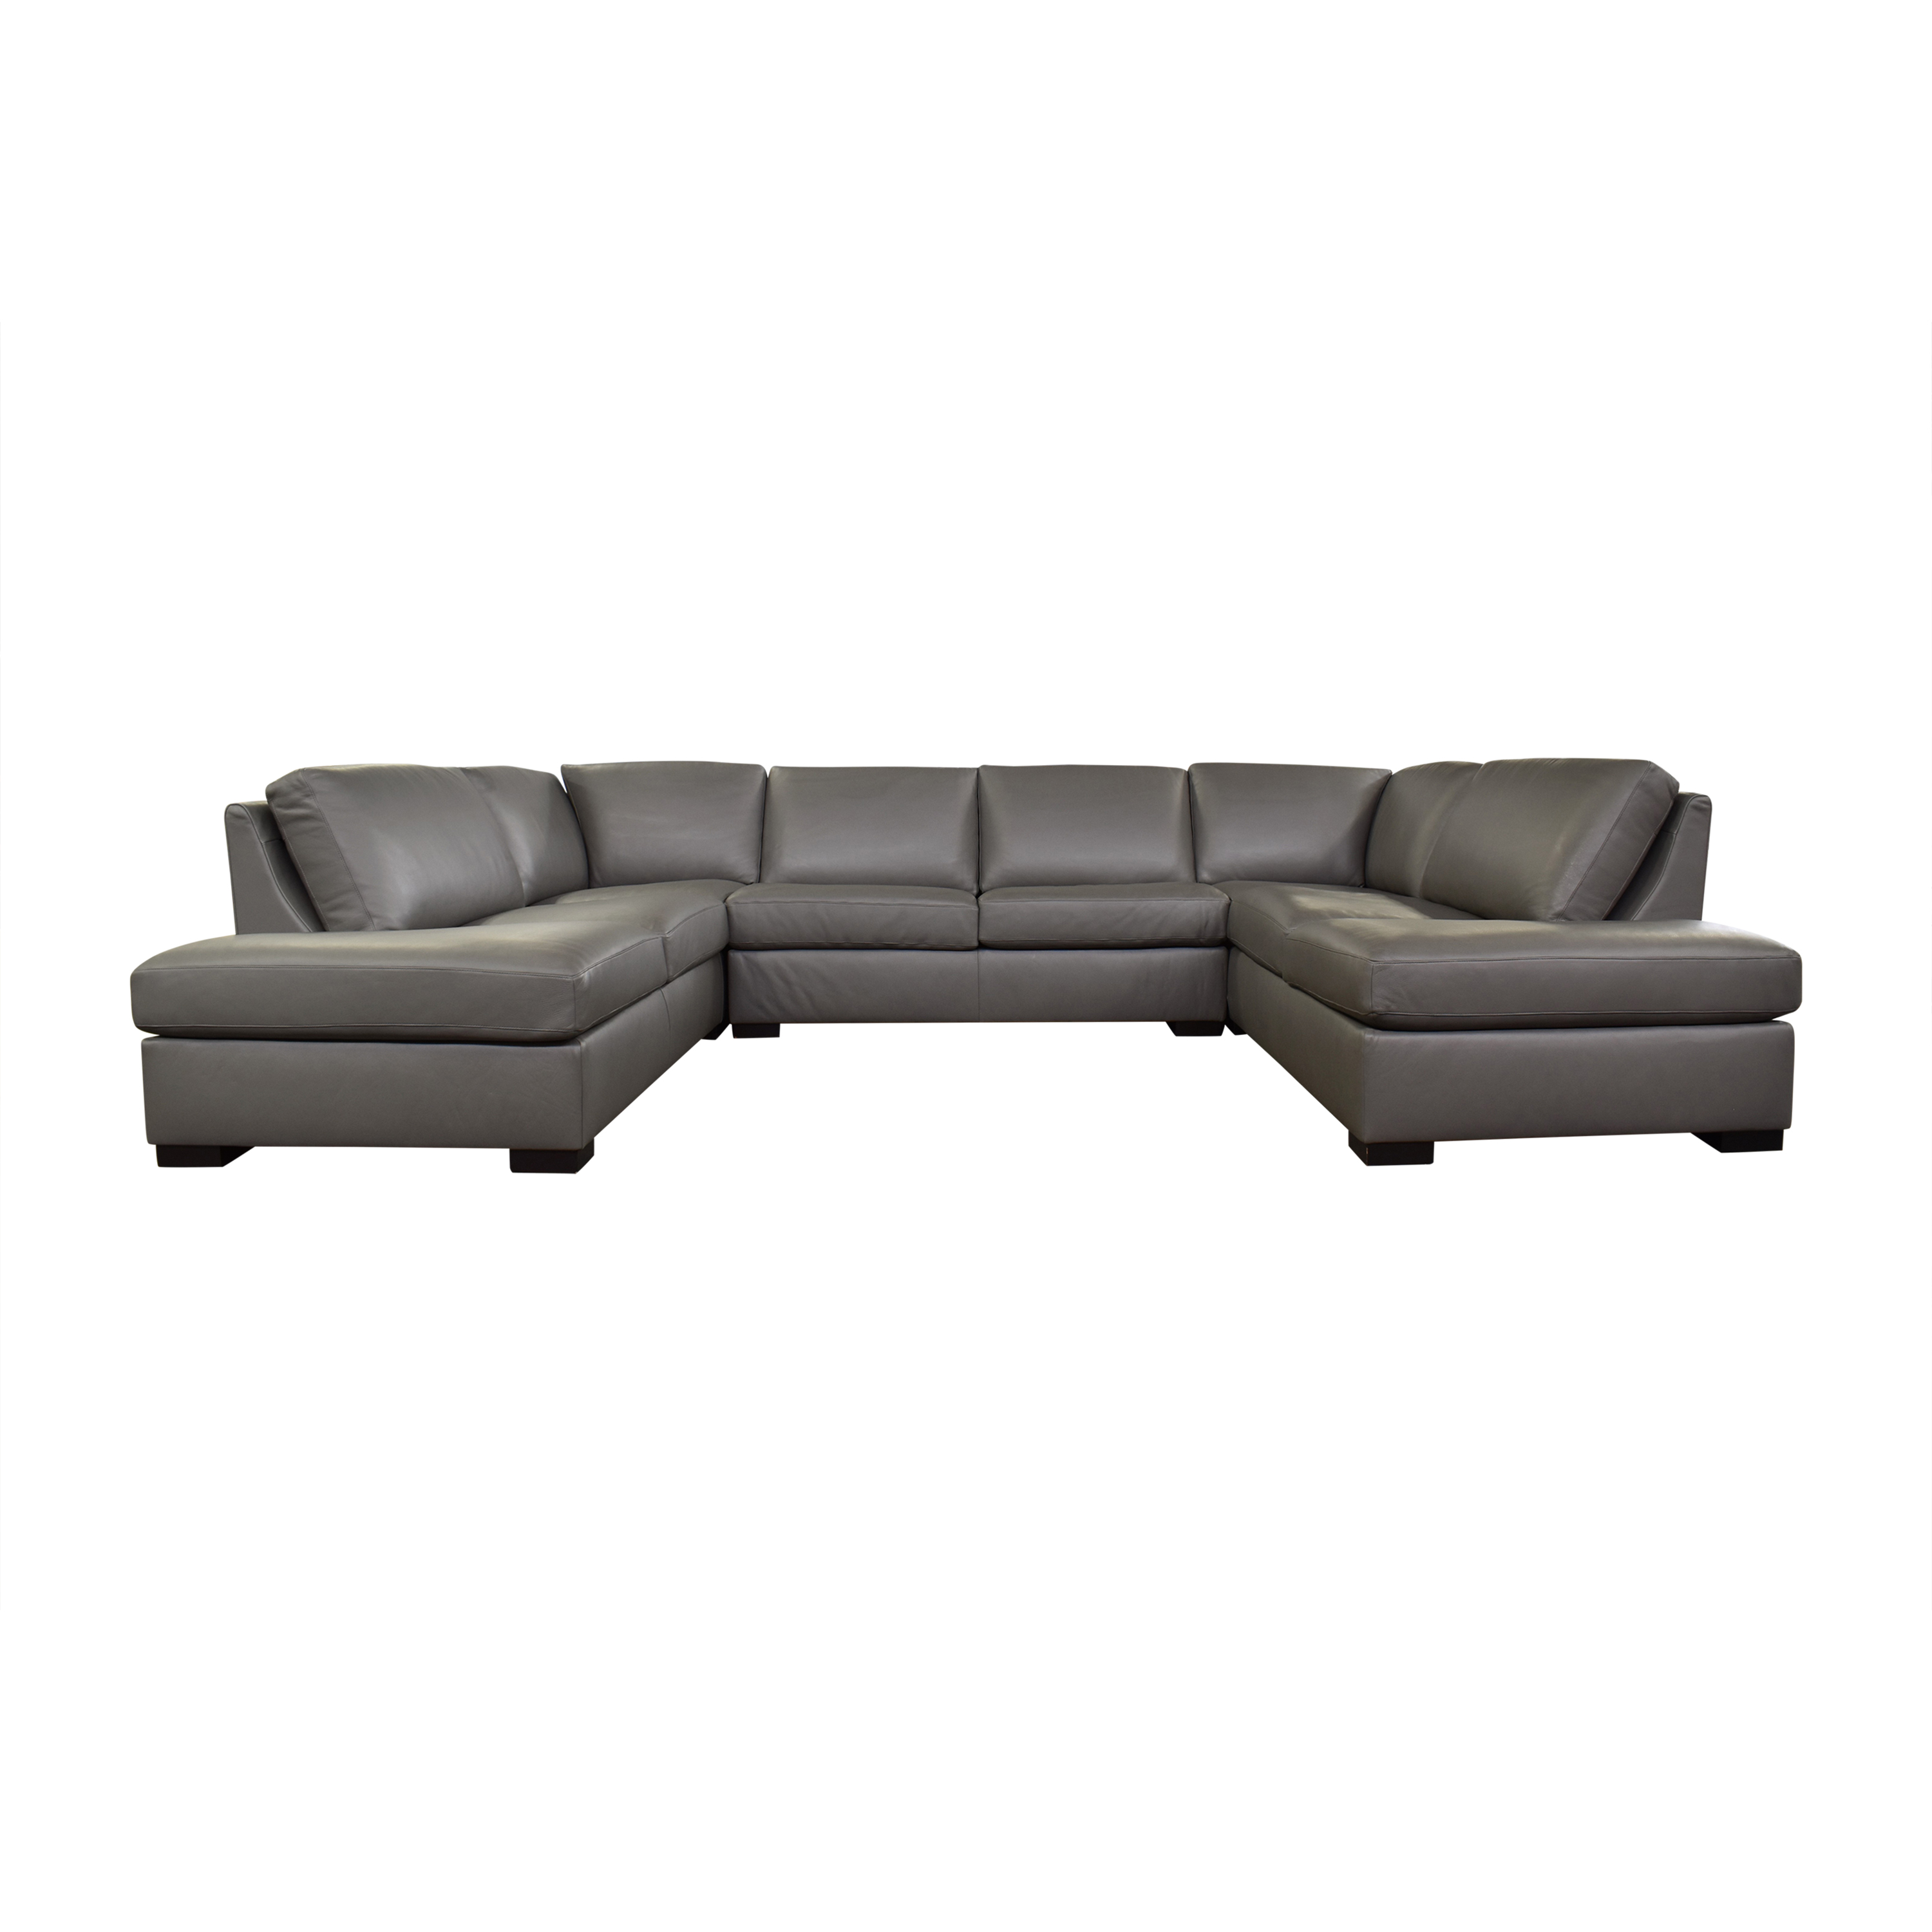 BenchMade Modern BenchMade Modern Couch Potato U-Shaped Bumper Sectional for sale